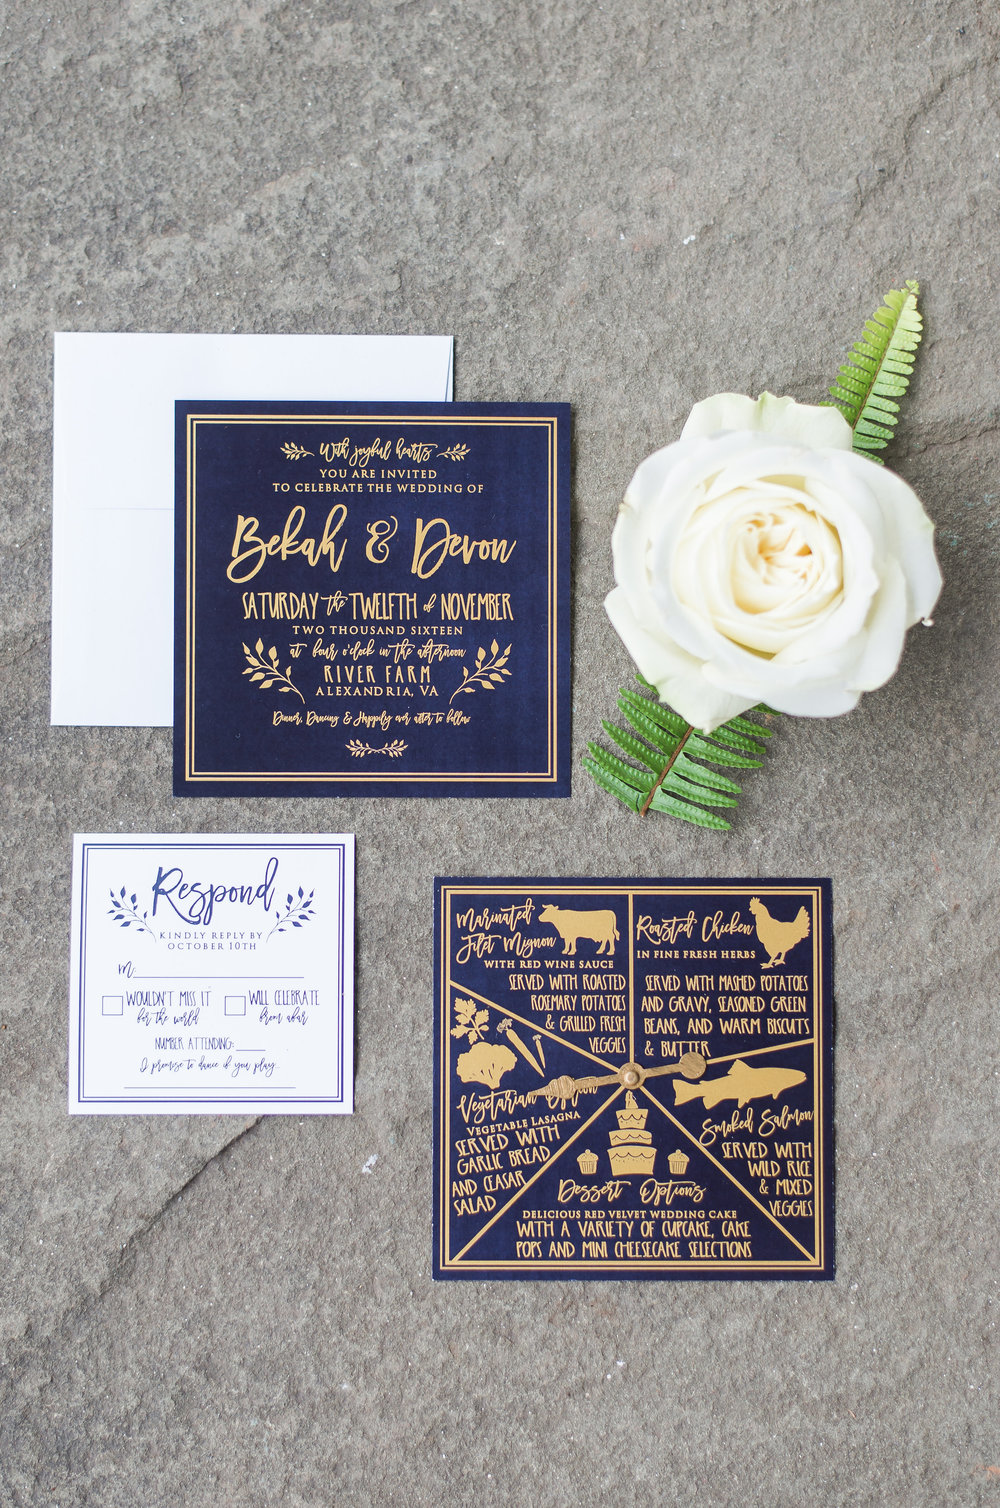 Navy & Gold Wedding Invitations, Elegant Wedding Invitations, Classic Wedding Invitations, Formal Wedding Invitations, Traditional Wedding Invitations, Navy Wedding Invitations